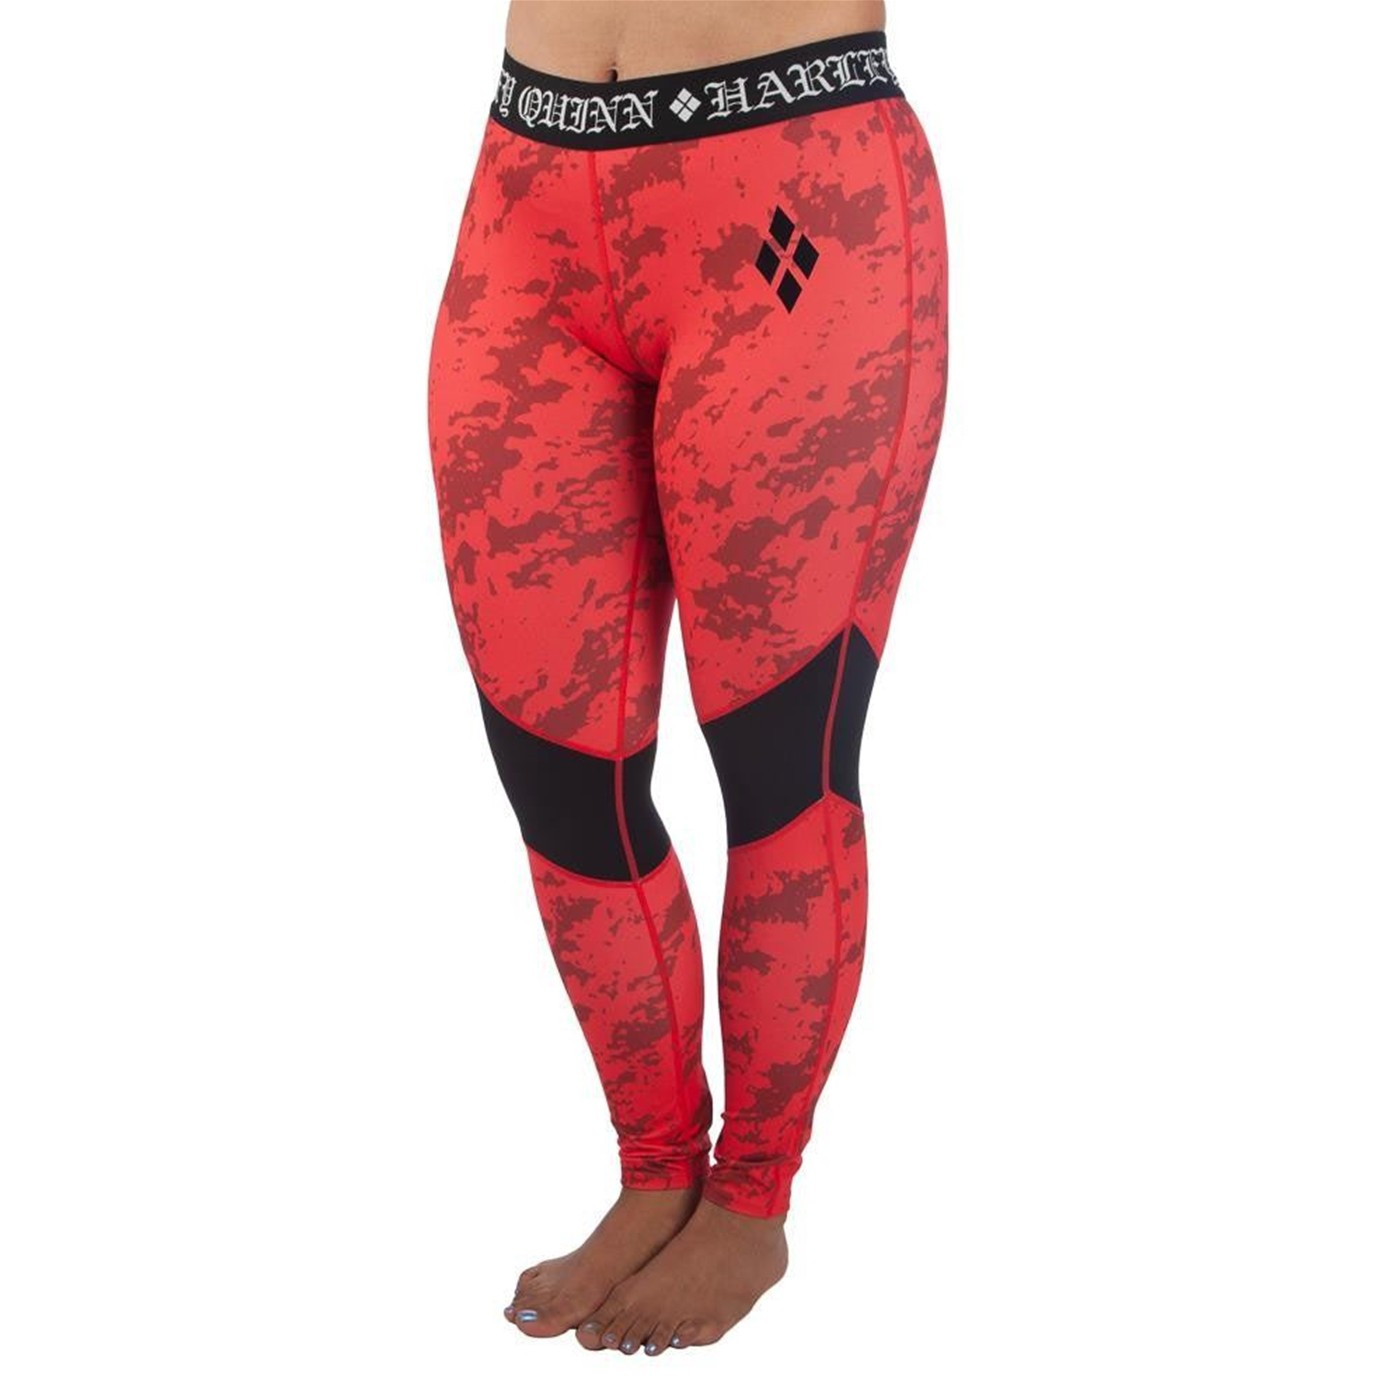 Harley Quinn Women's Active Leggings